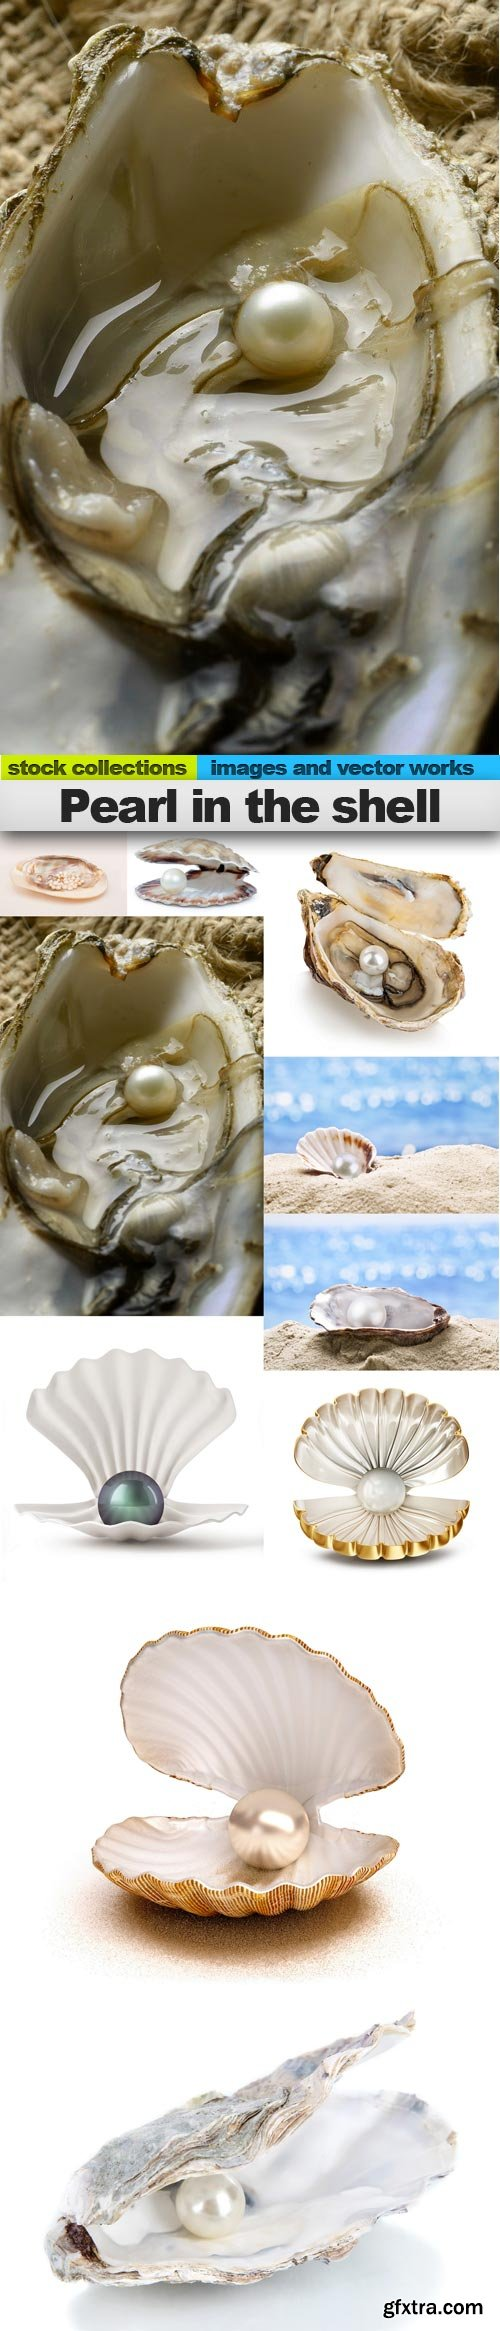 Pearl in the shell, 10 x UHQ JPEG